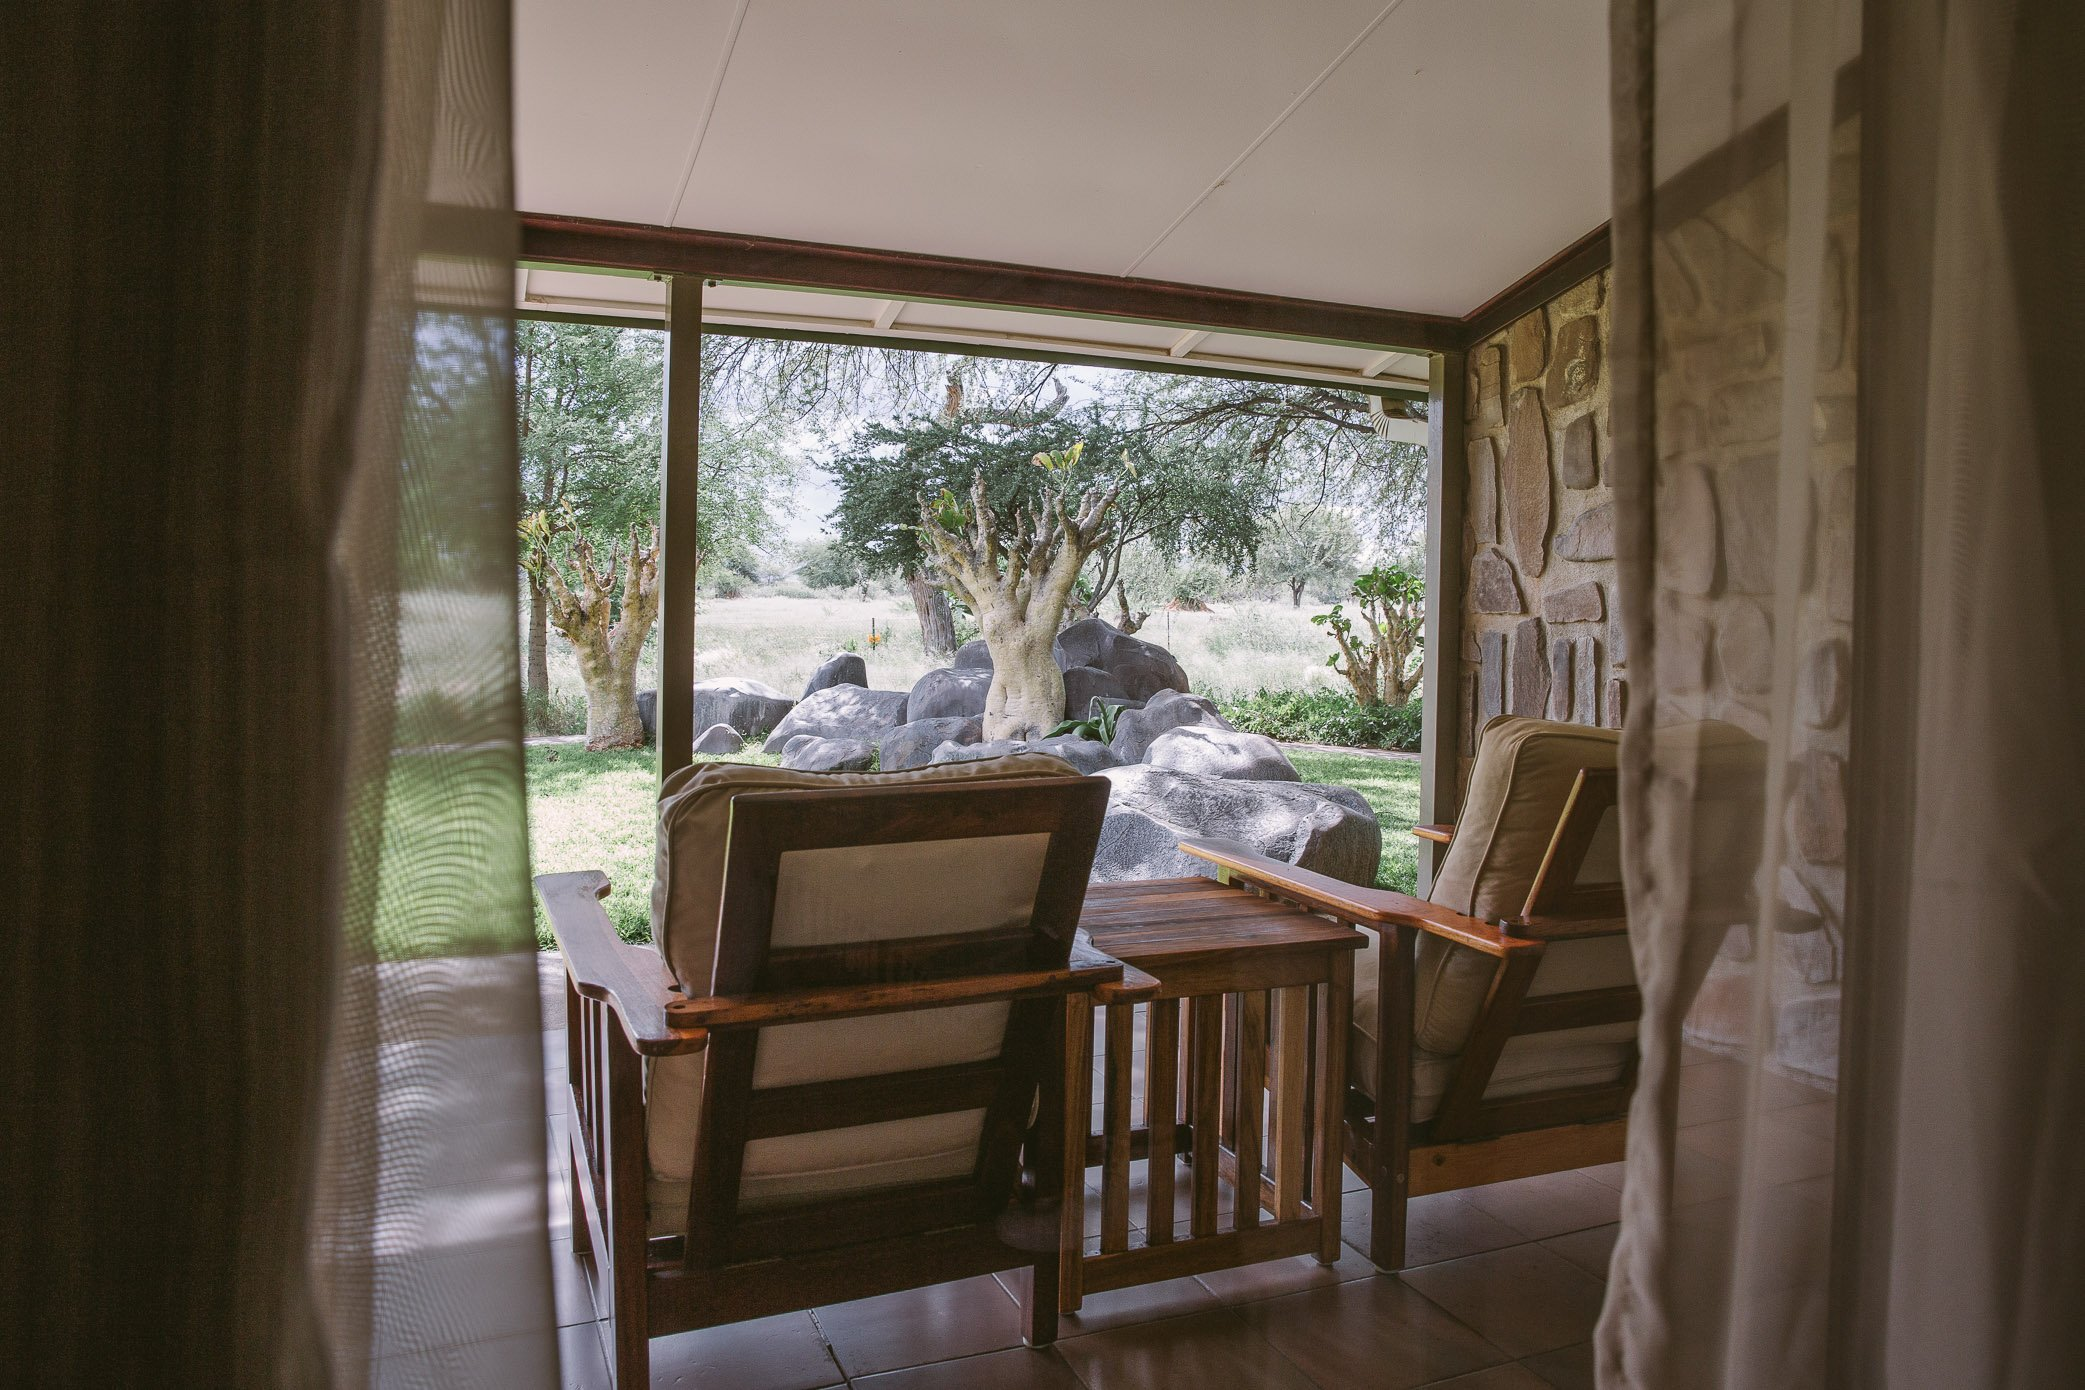 Terrace of a Luxury Suite at Erindi Private Game Reserve